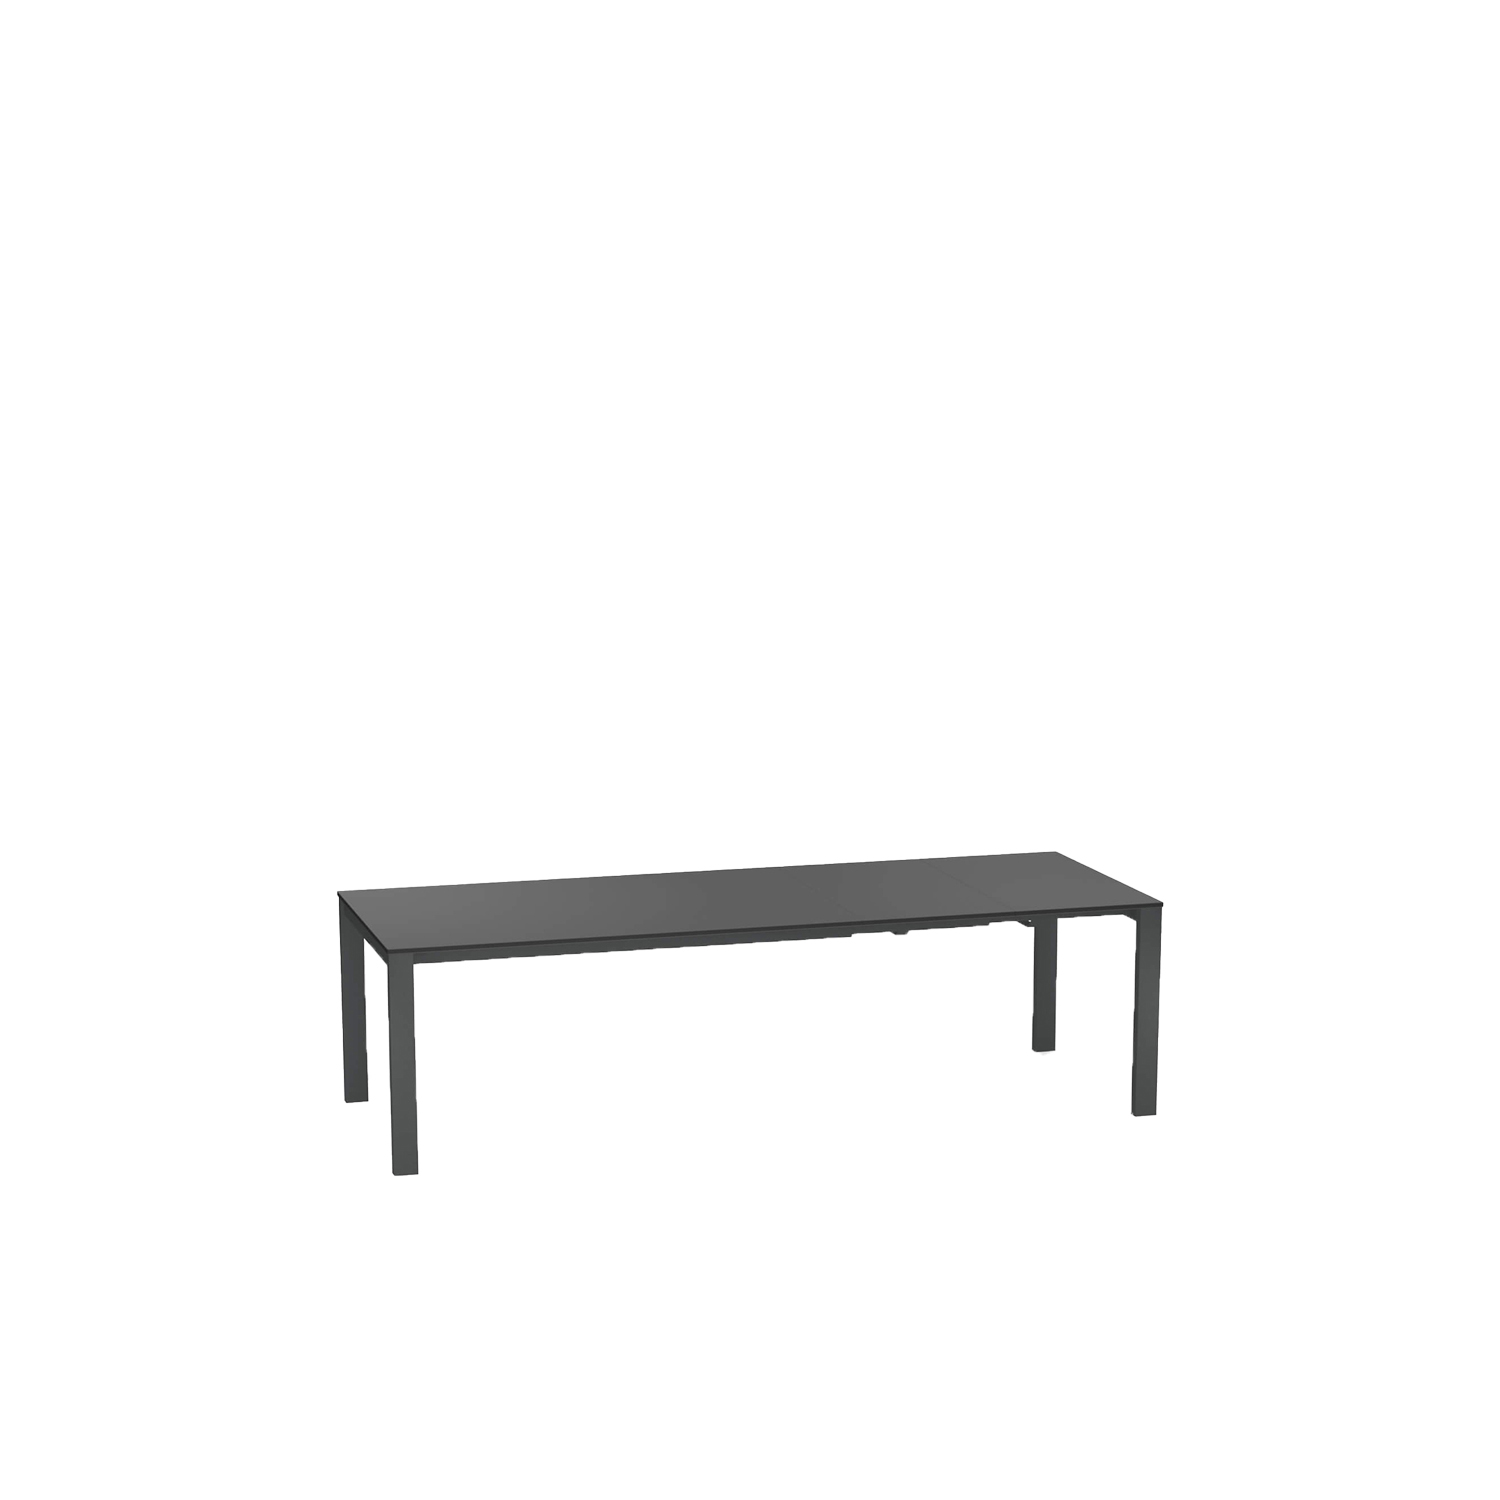 Round Extensible Table With Steel Sheet Top - The Round Extensible Table With Steel Sheet Top can be extended to suit your space or needs. The length it comes in is 160 cm but this can be extended +54 cm and then +54 cm again of needed. It comes in Matt White and Antique Iron. Please refer to the Colours and Finishes attachment to see these colours.   Round is a collection defined by its search for structural balance and soft lines, an interpretation of outdoor space that conveys stylistic but essential refinement. Clean and basic shapes mark the range of elements that make up this collection.  | Matter of Stuff